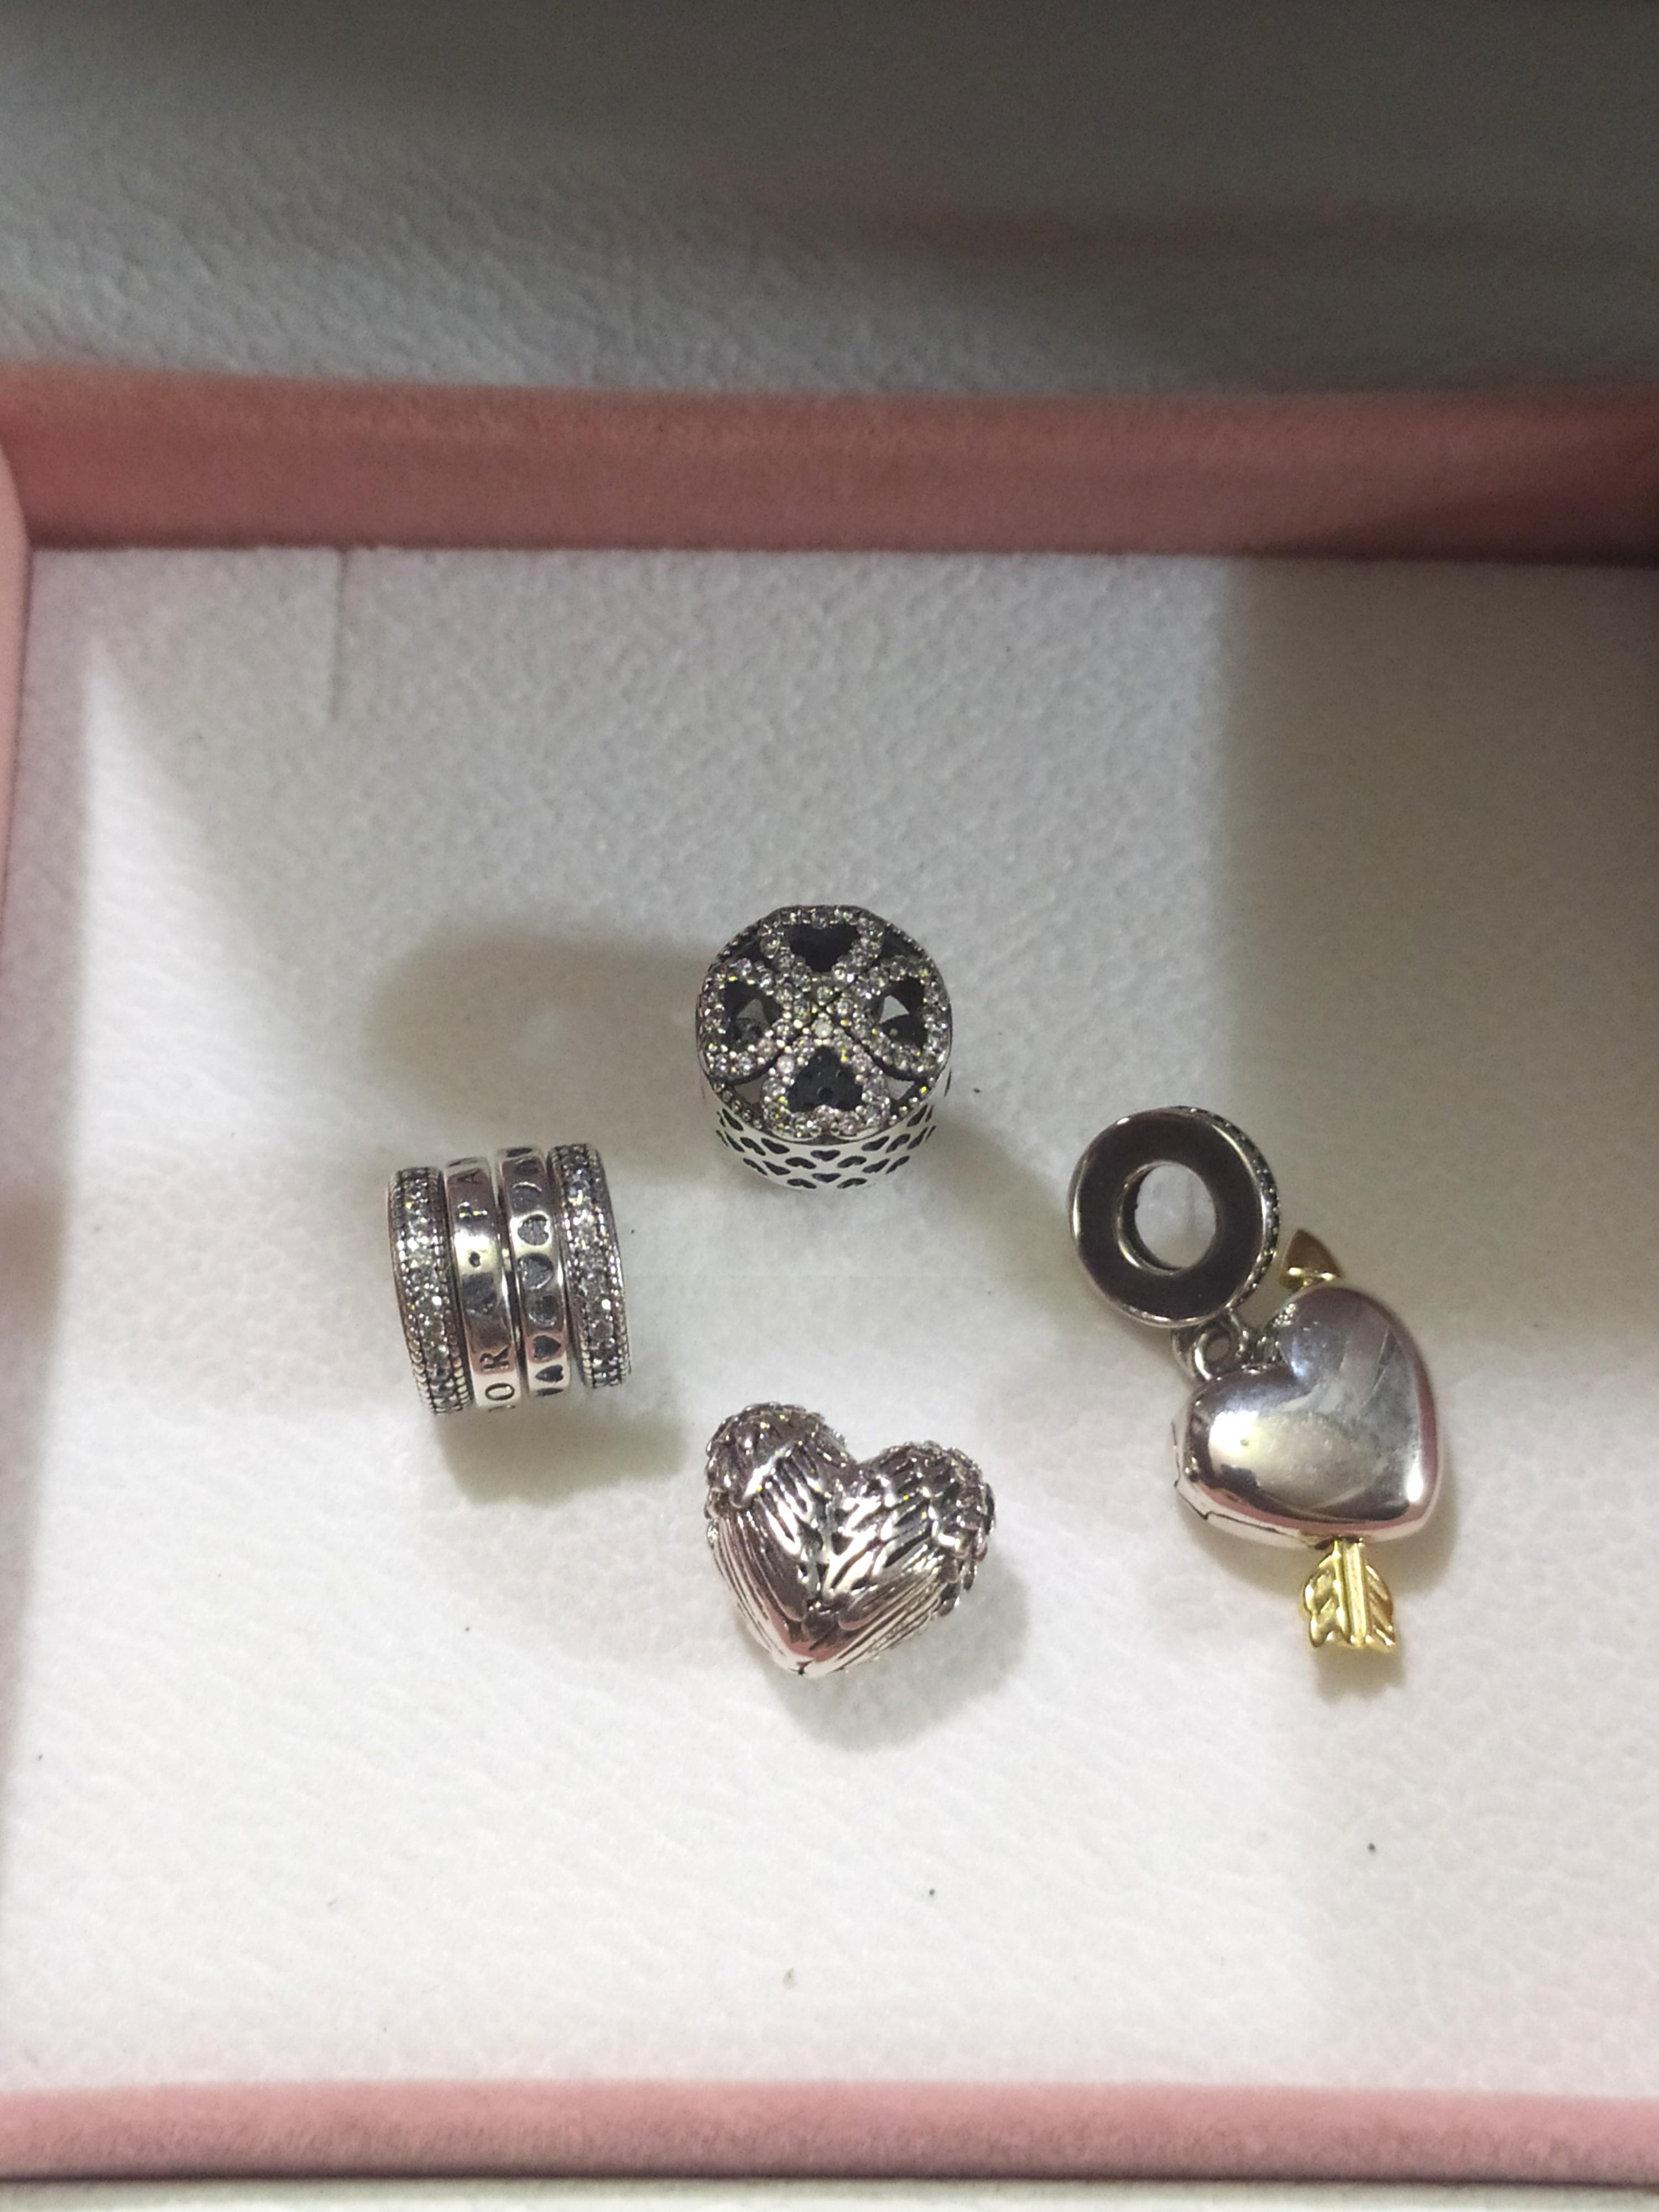 Pandora Charms Sale 1000 Each Women S Fashion Watches Accessories Other Accessories On Carousell